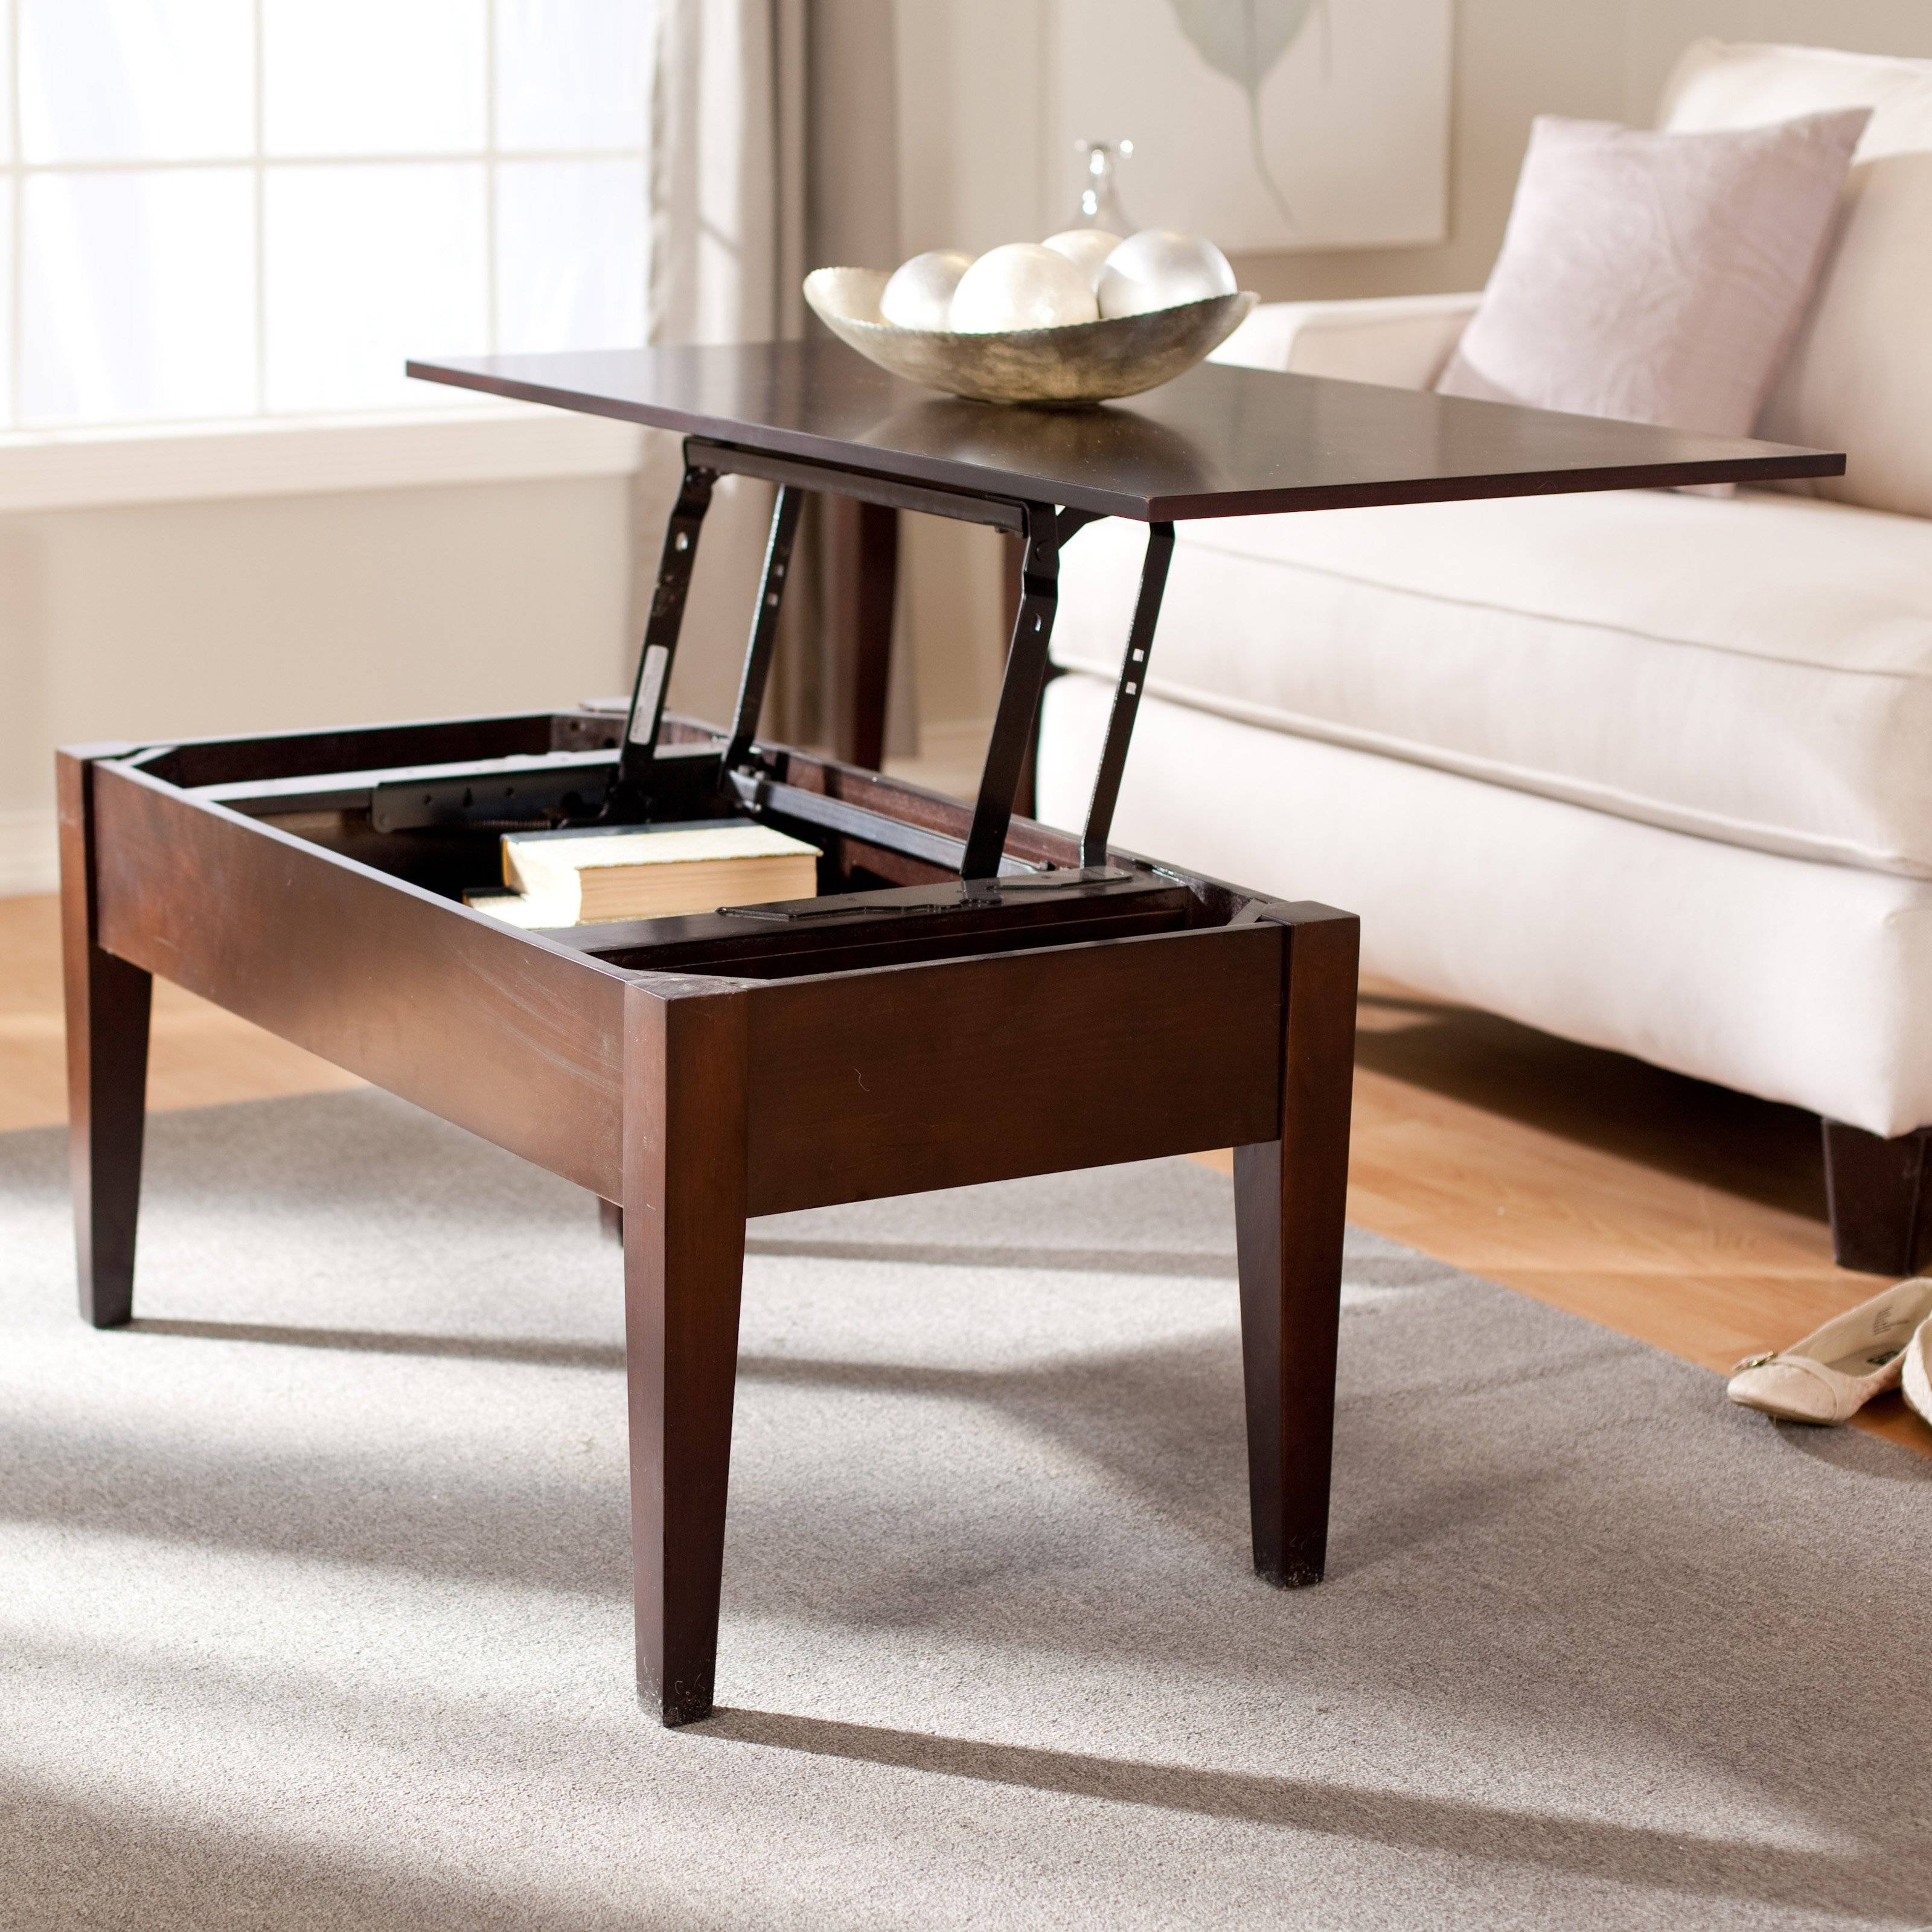 Turner Lift Top Coffee Table - Espresso | Hayneedle in Rising Coffee Tables (Image 27 of 30)